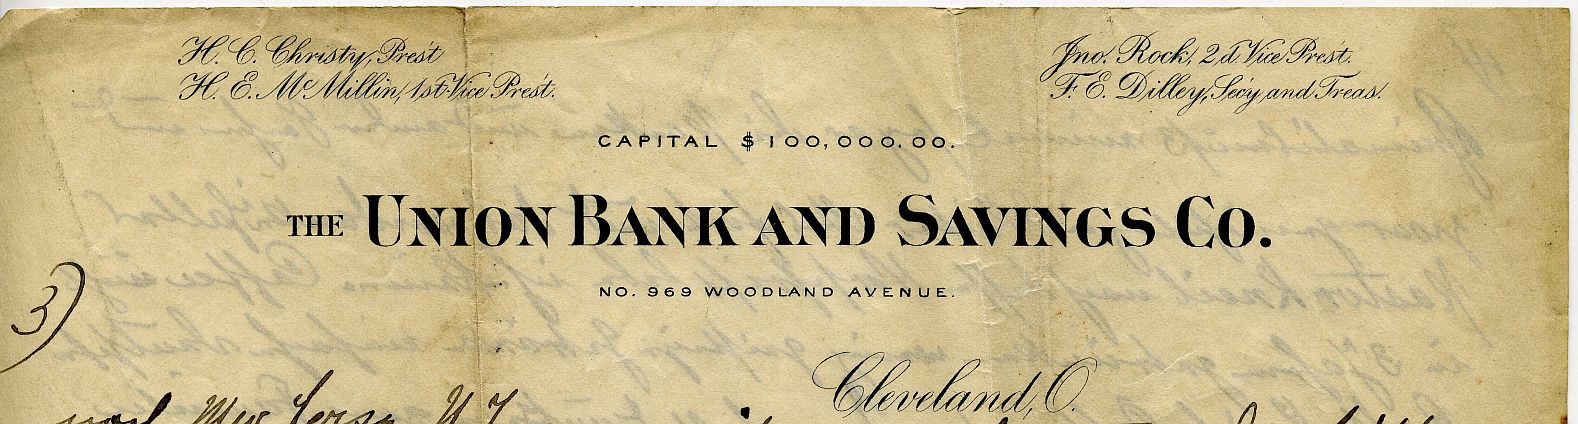 Union Bank and Savings, Cleveland, Ohio